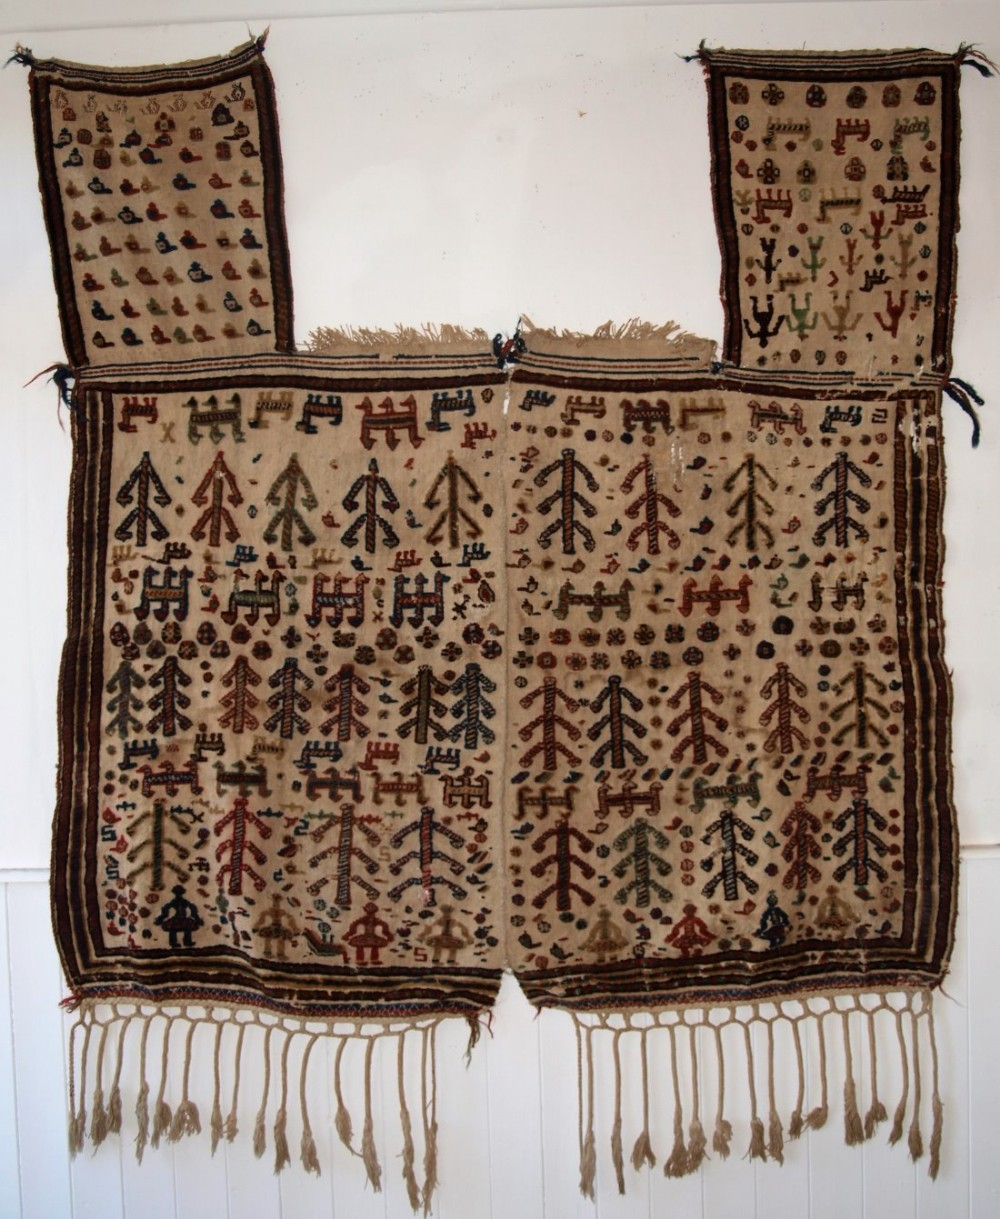 antique qashqai tribal horse cover blanket or rug beautifully decorated circa 1890